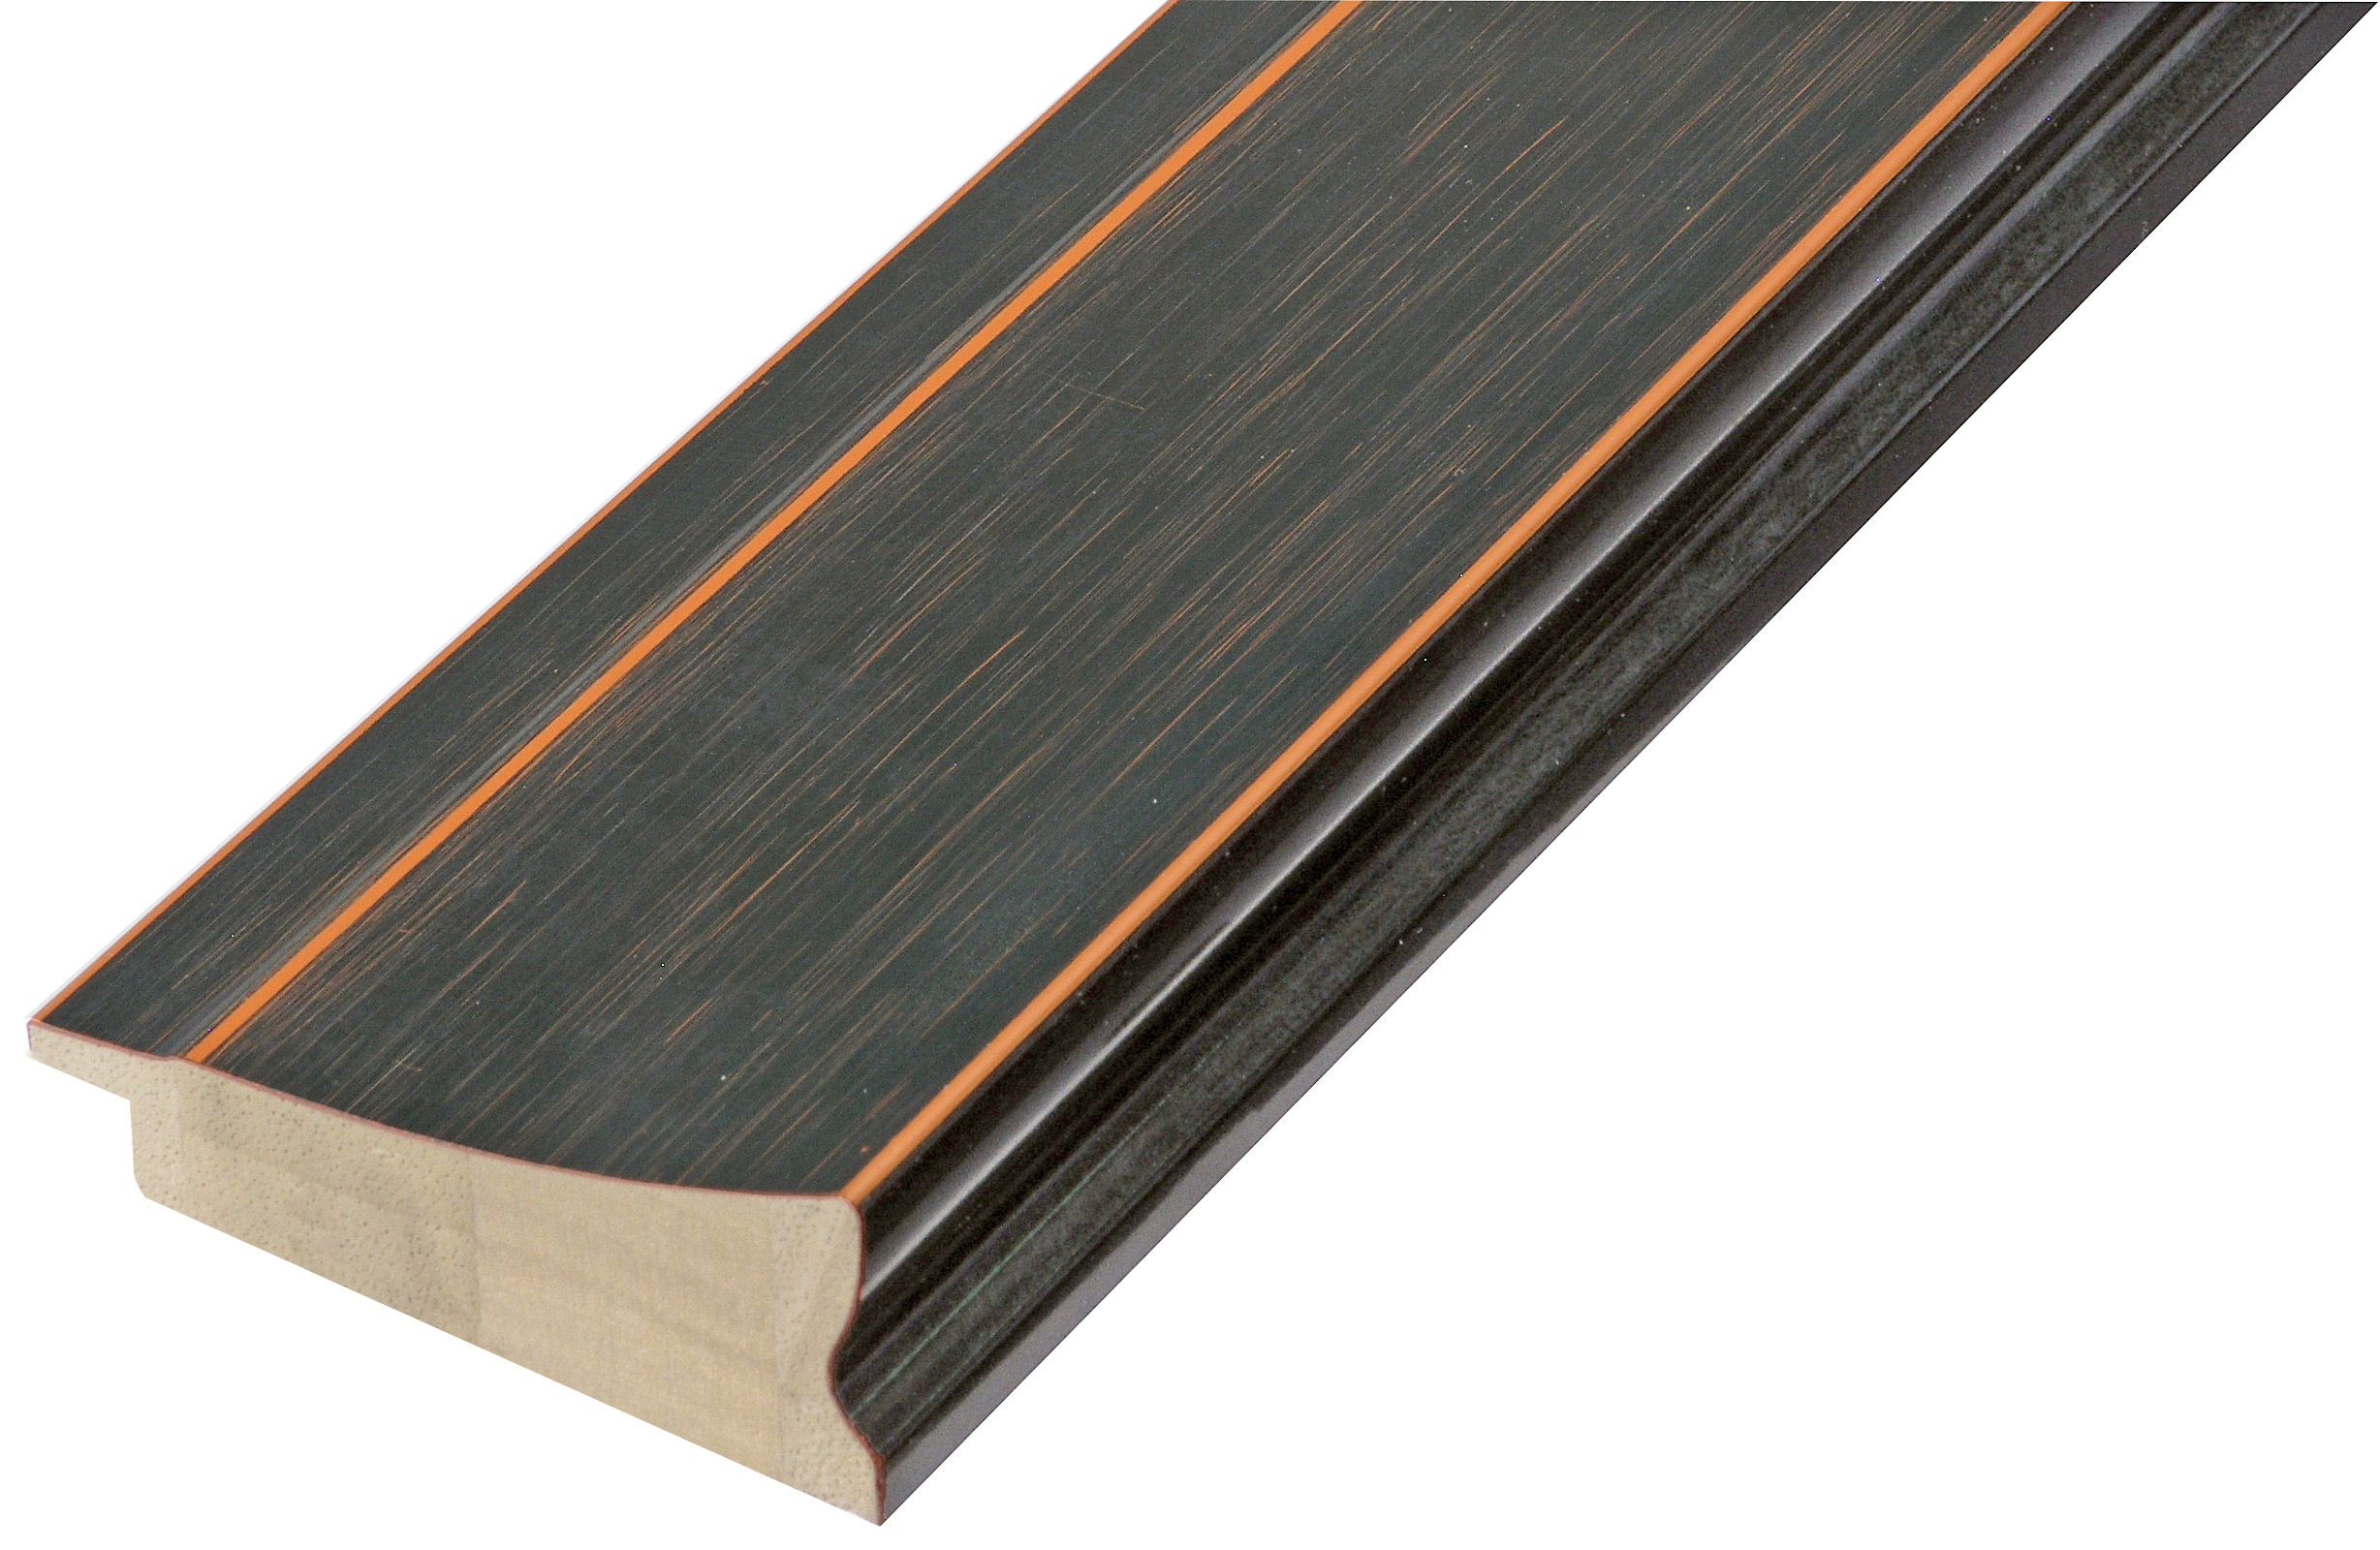 Moulding fir timber - Width 68mm - Black finish